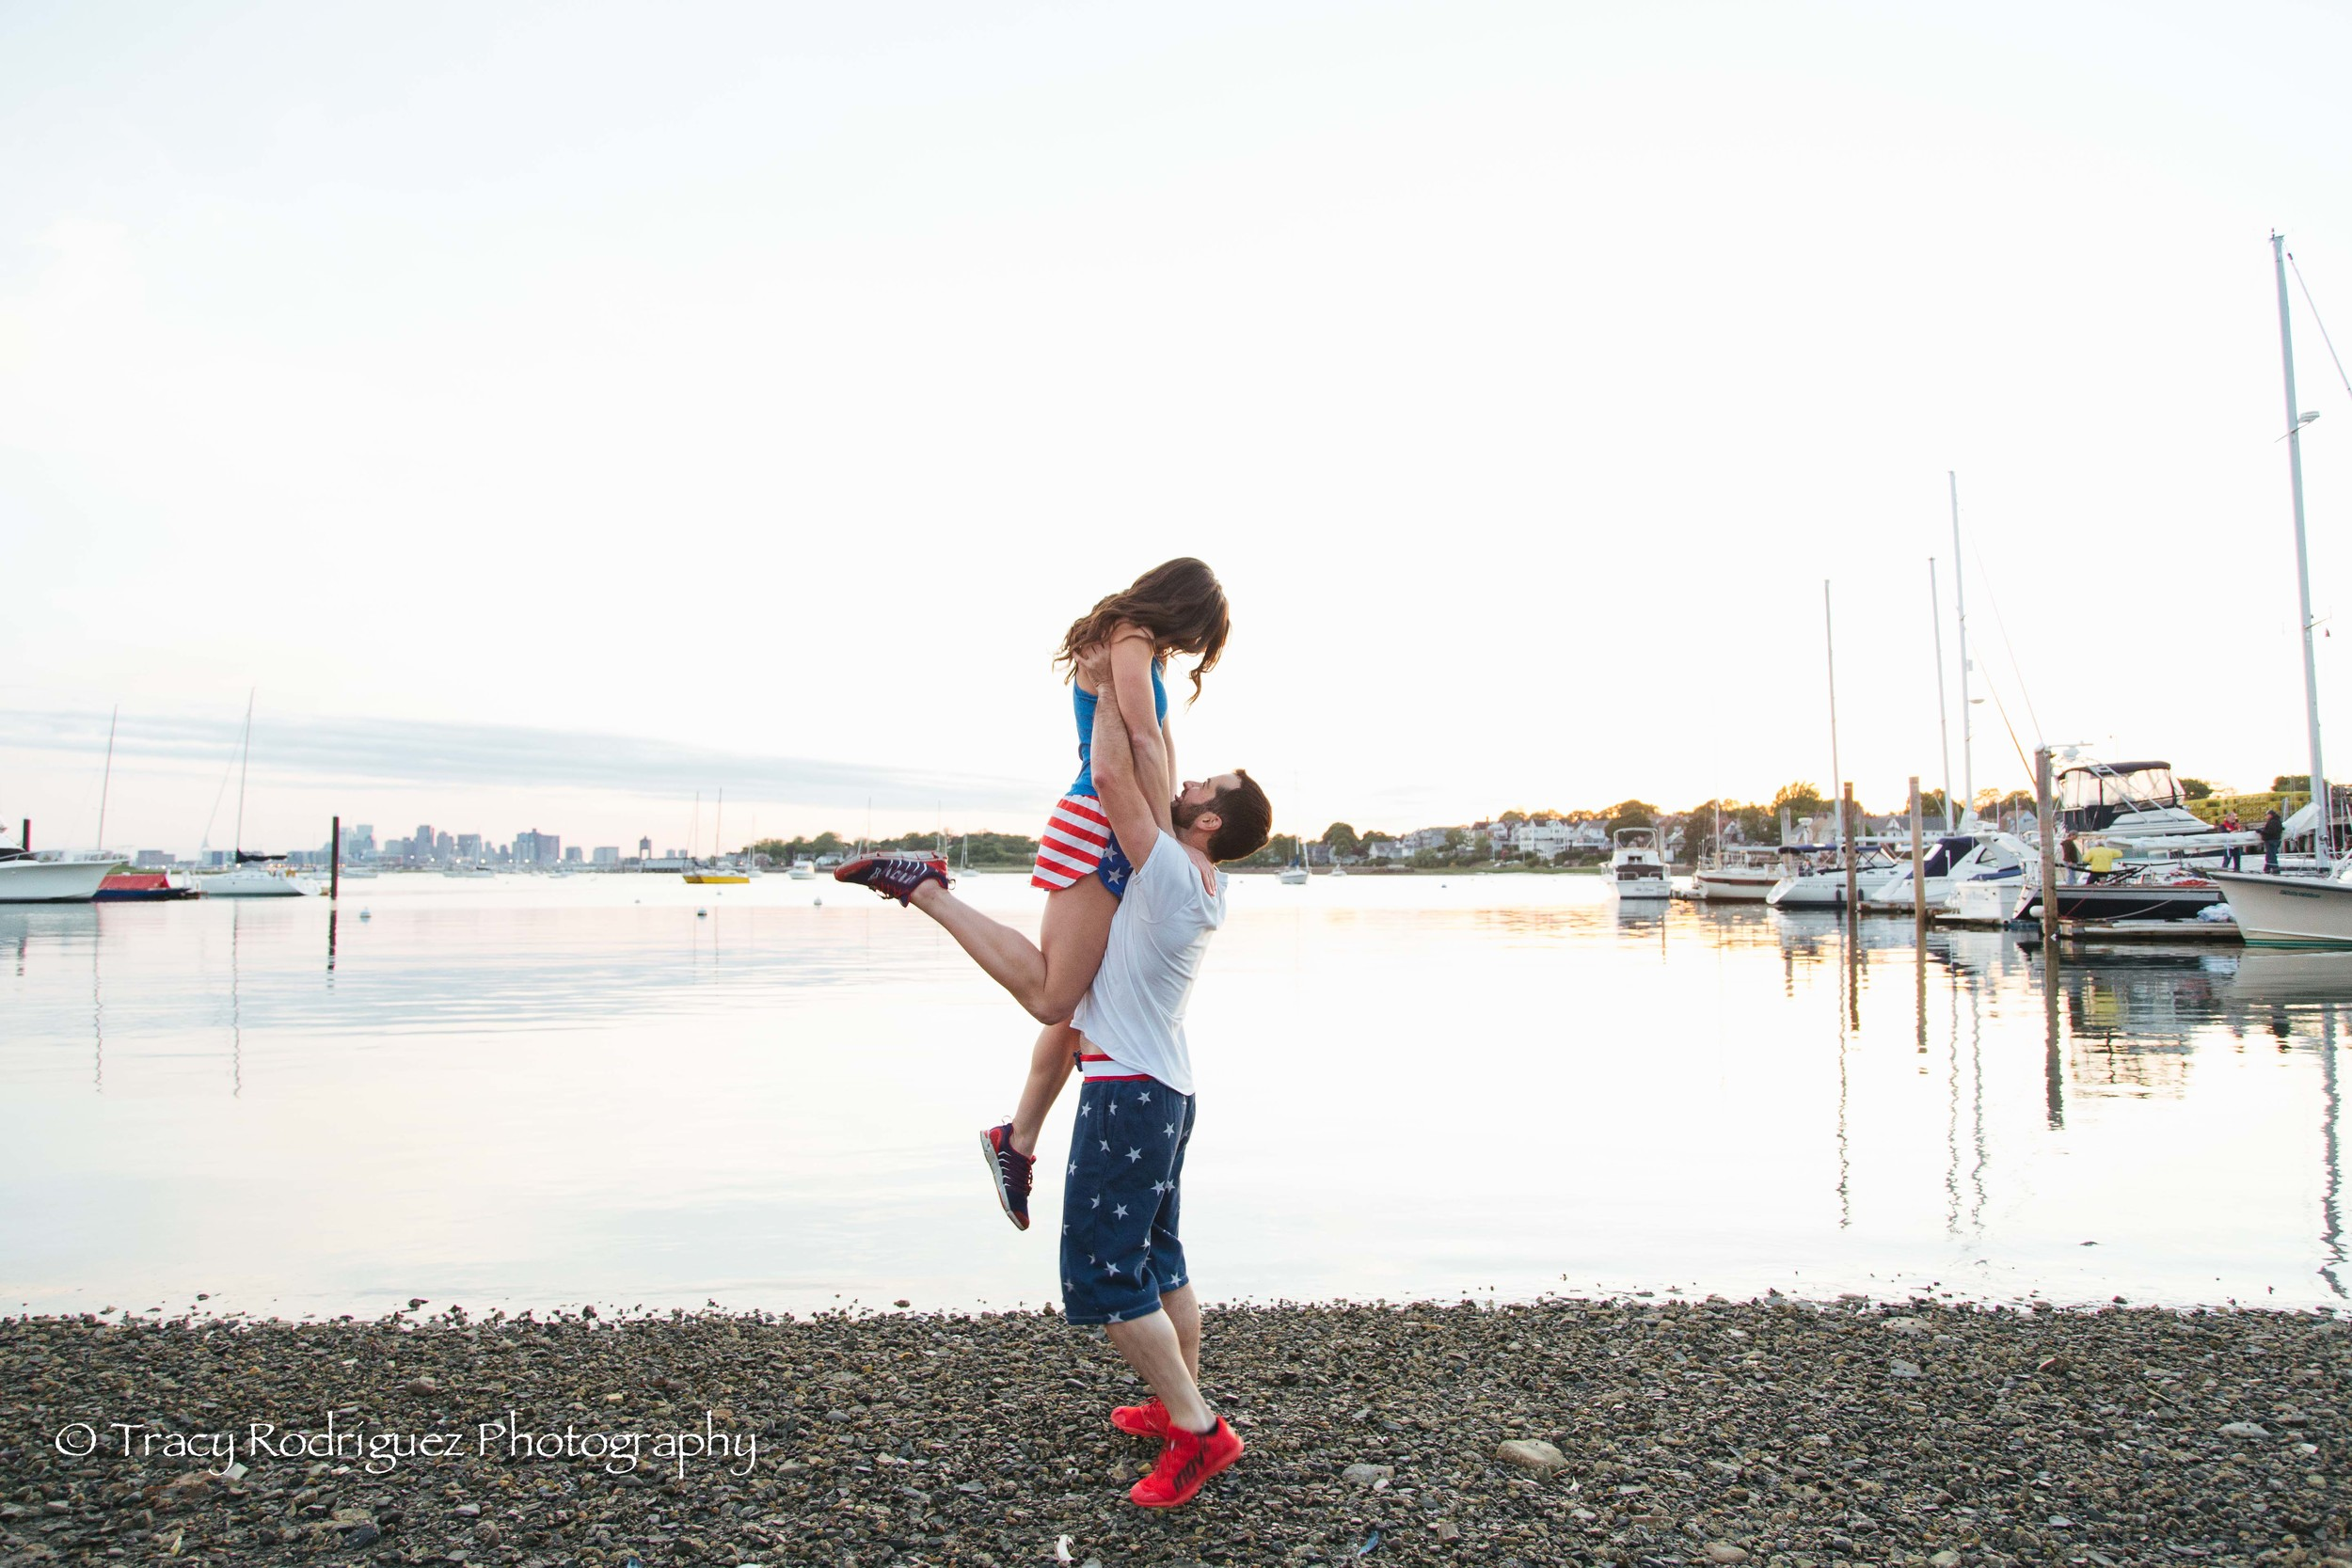 TracyRodriguezPhotography-LowRes-128.jpg